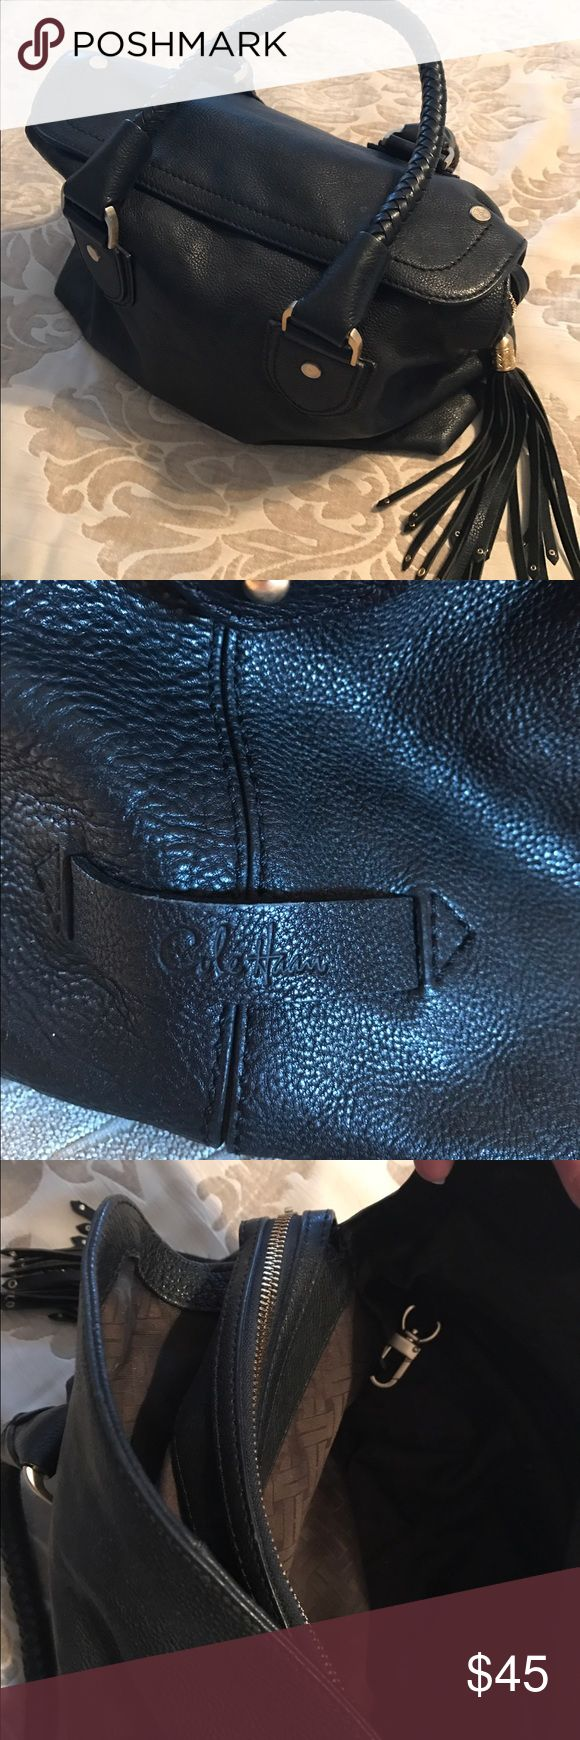 Cole Haan black leather handbag Gorgeous black leather Cole Haan purse in excellent condition. Have too many bags. Trying to consolidate. Cole Haan Bags Satchels